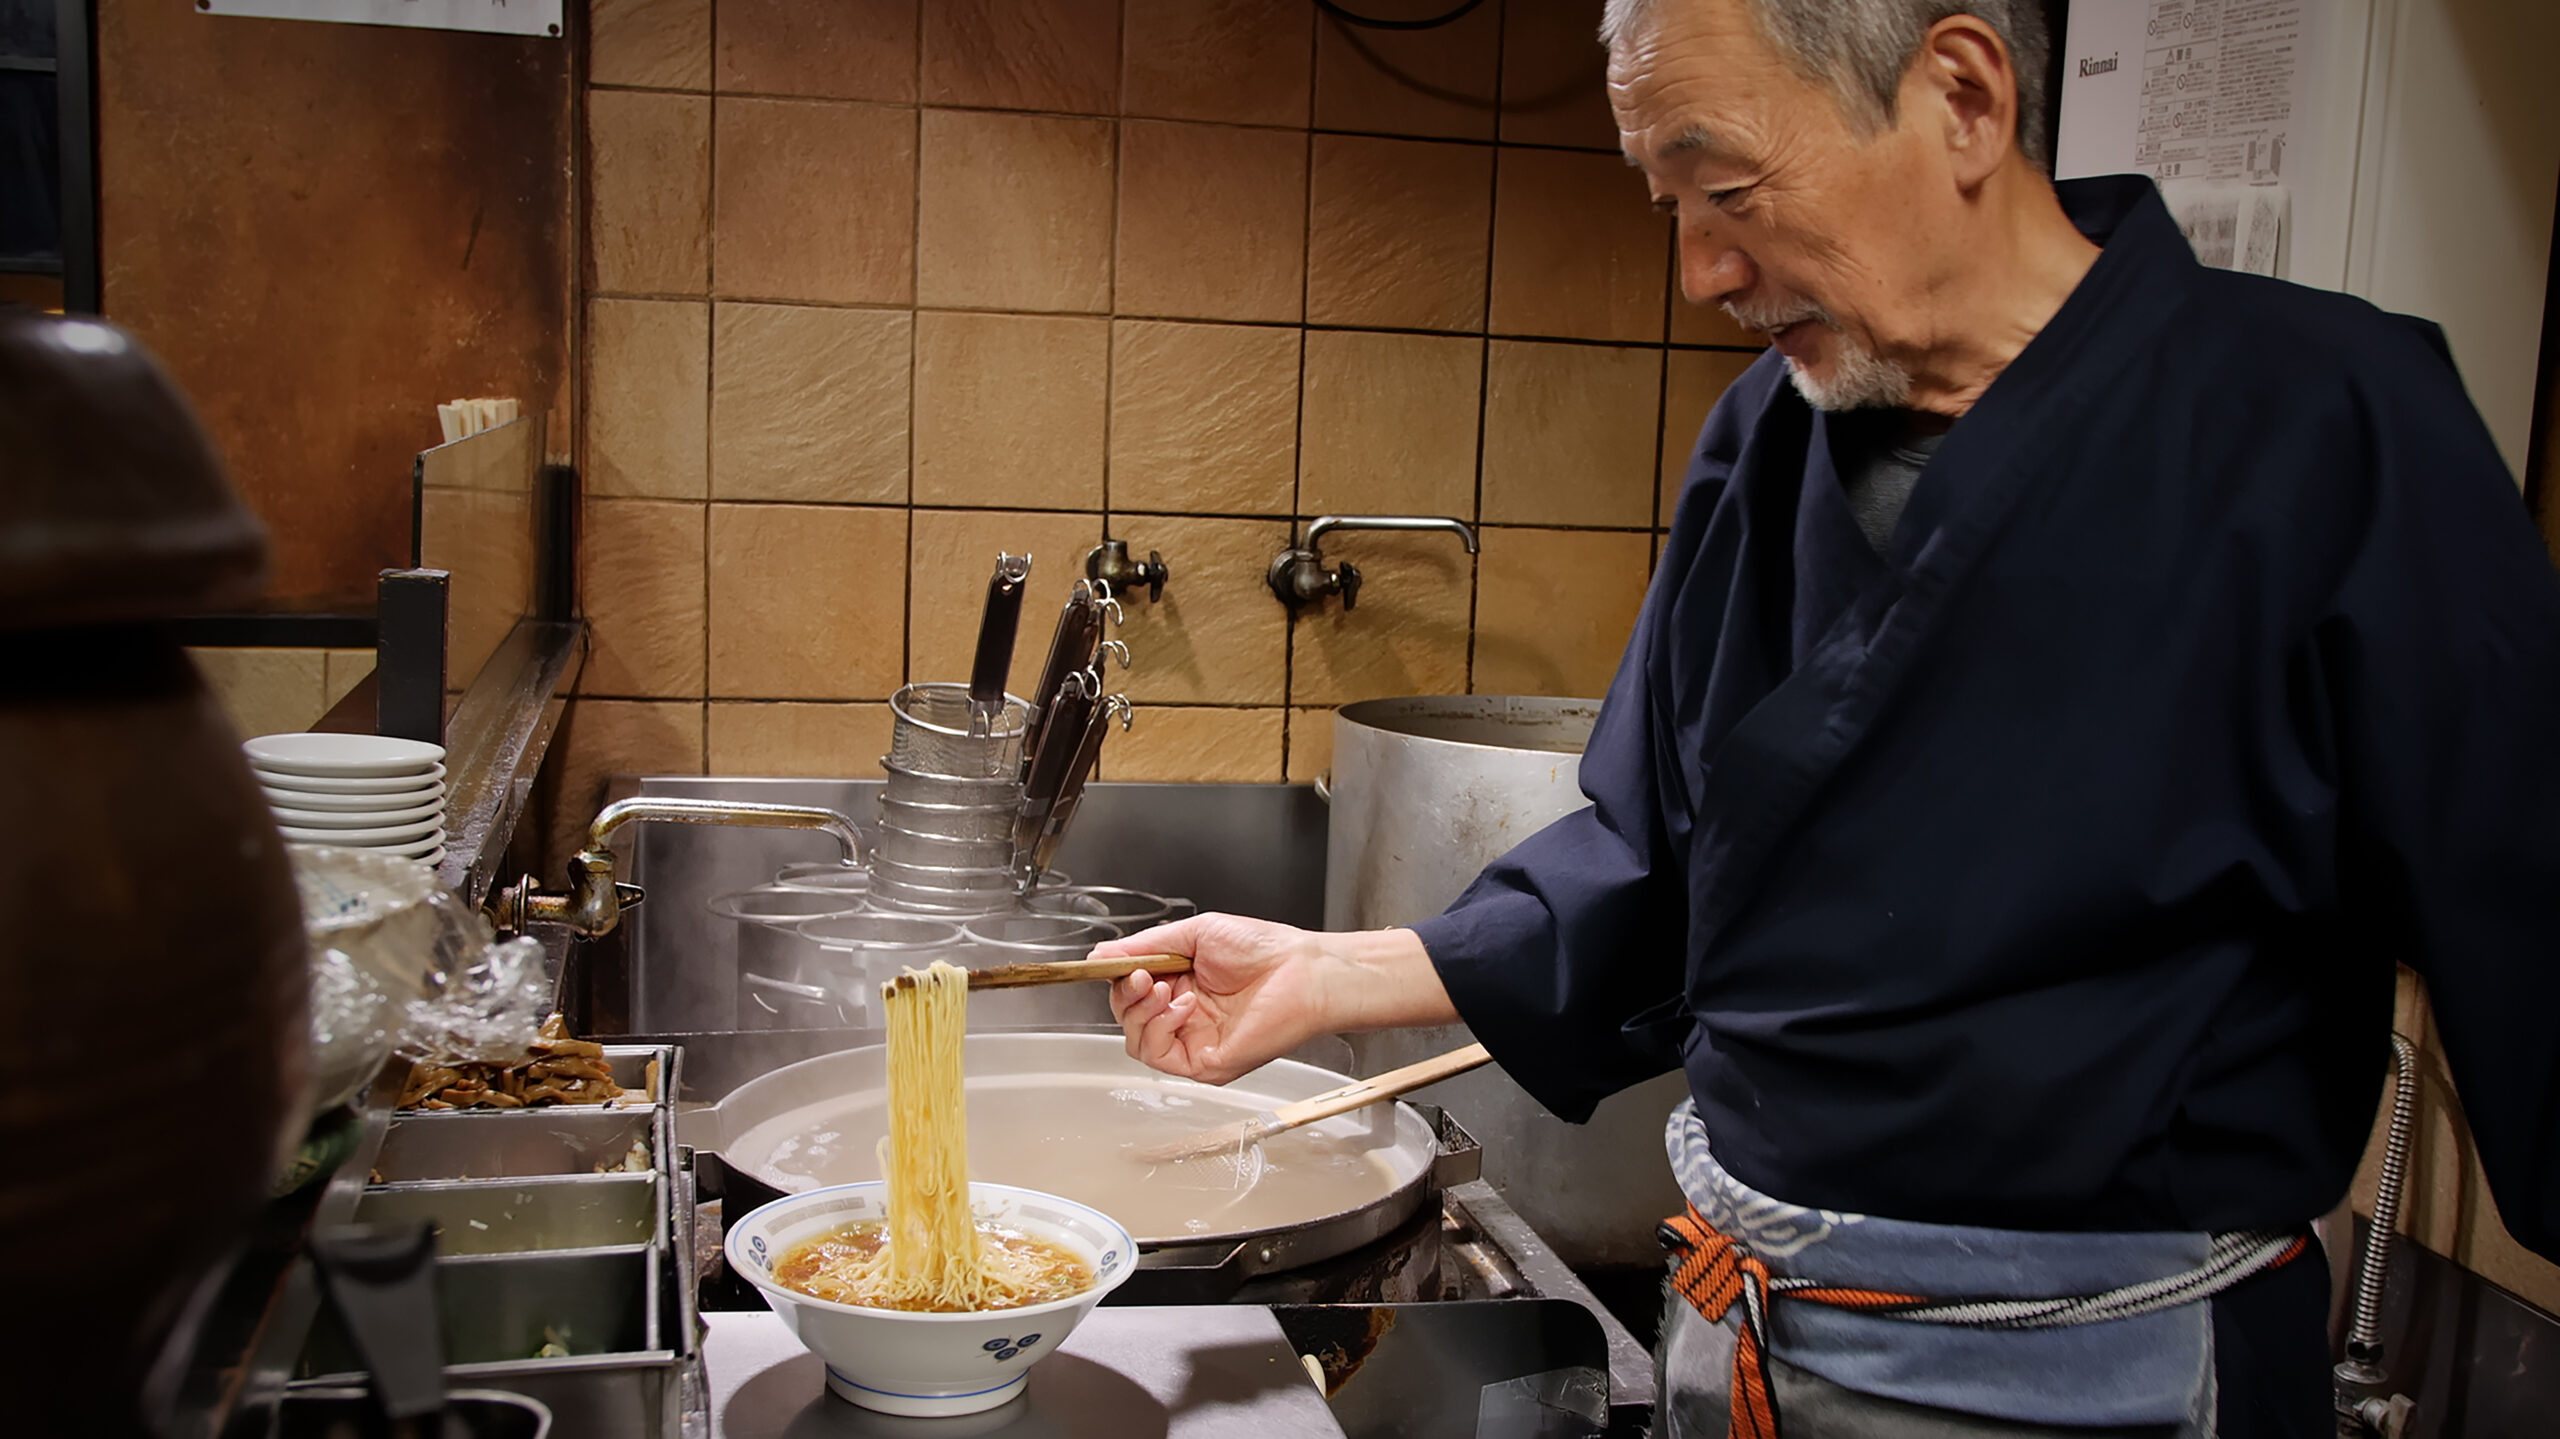 Come Back Anytime w/Tanagokoro: A Culinary Portrait - IN PERSON